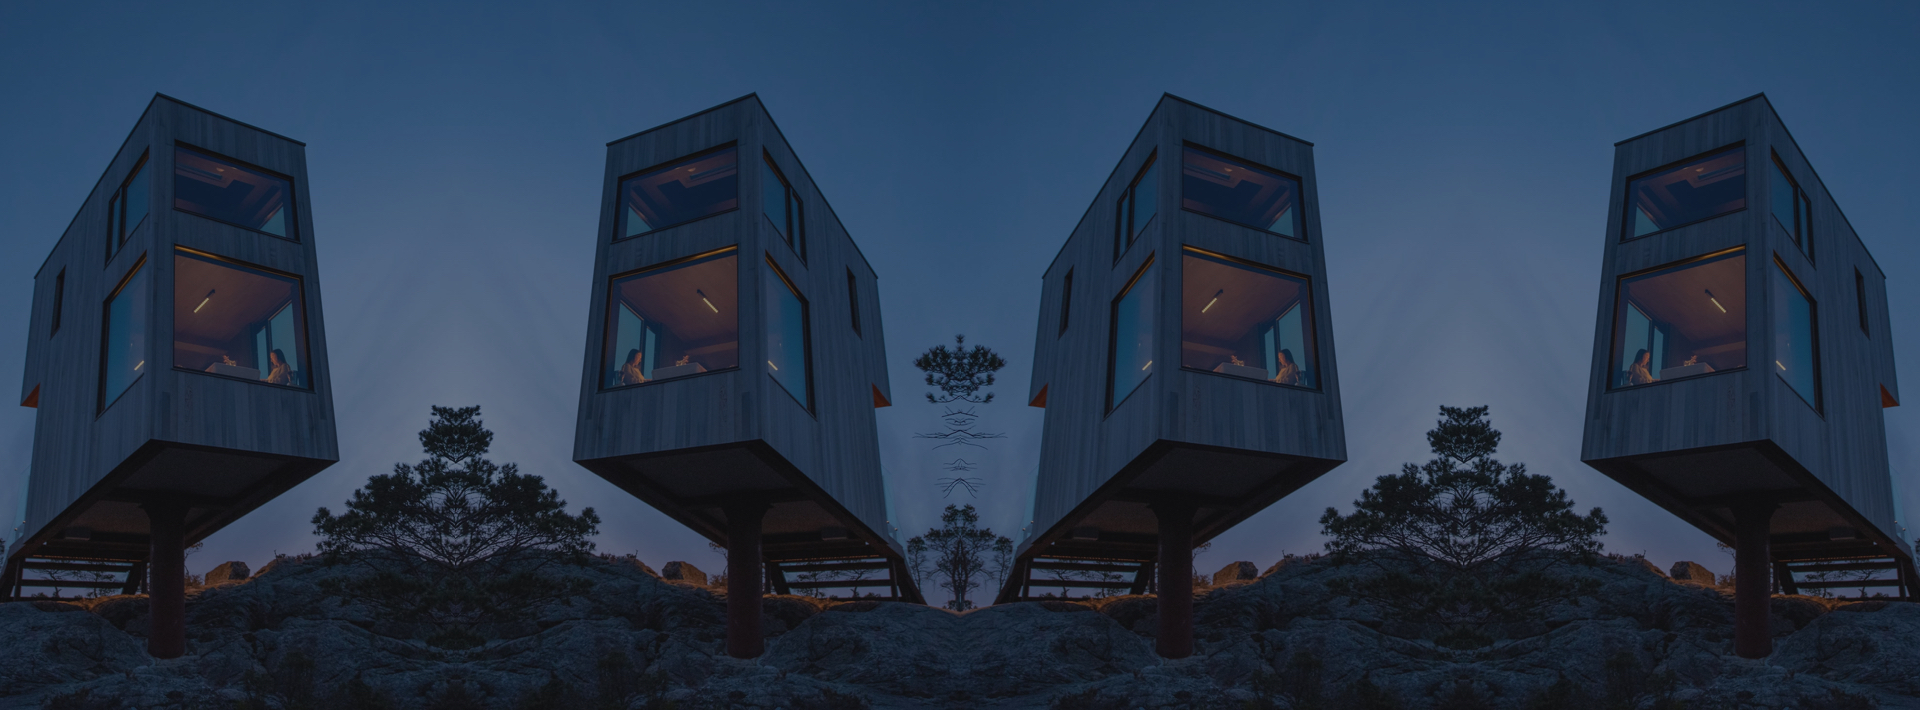 Waking up at the top of the world at The Bolder Sky Lodges.